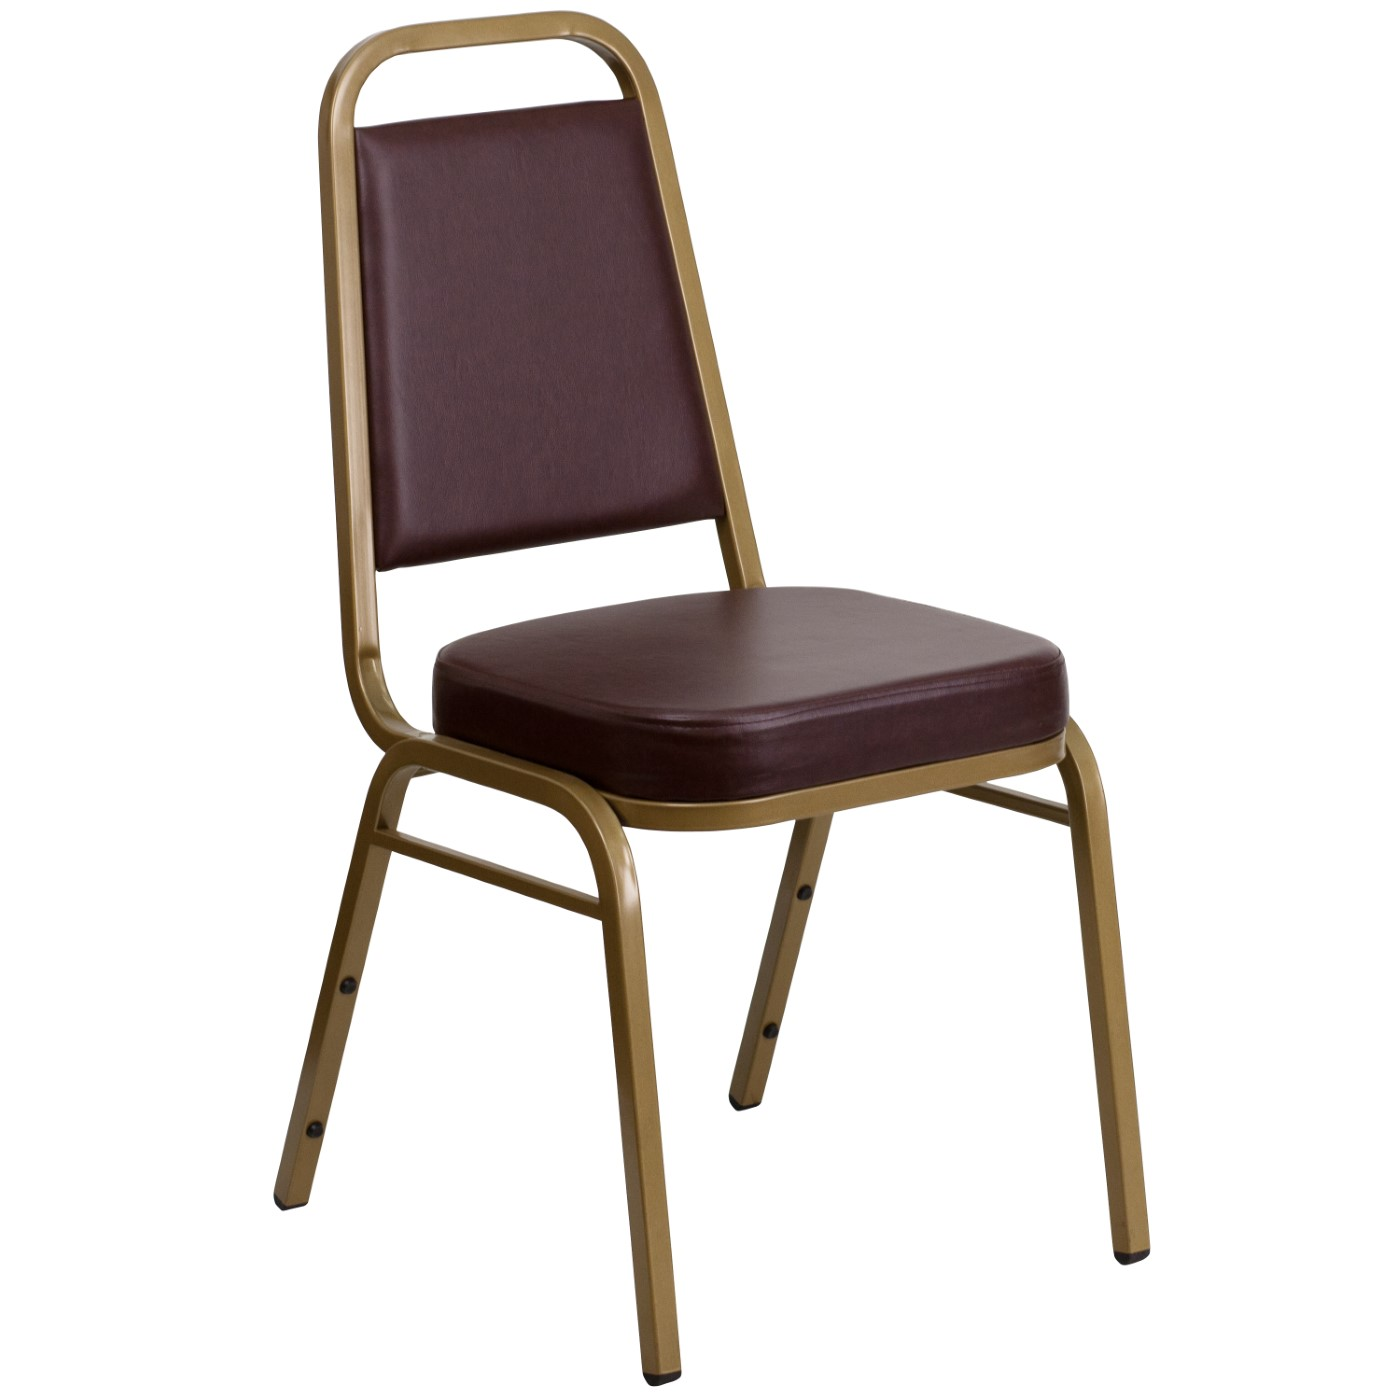 TOUGH ENOUGH Series Trapezoidal Back Stacking Banquet Chair in Brown Vinyl - Gold Frame